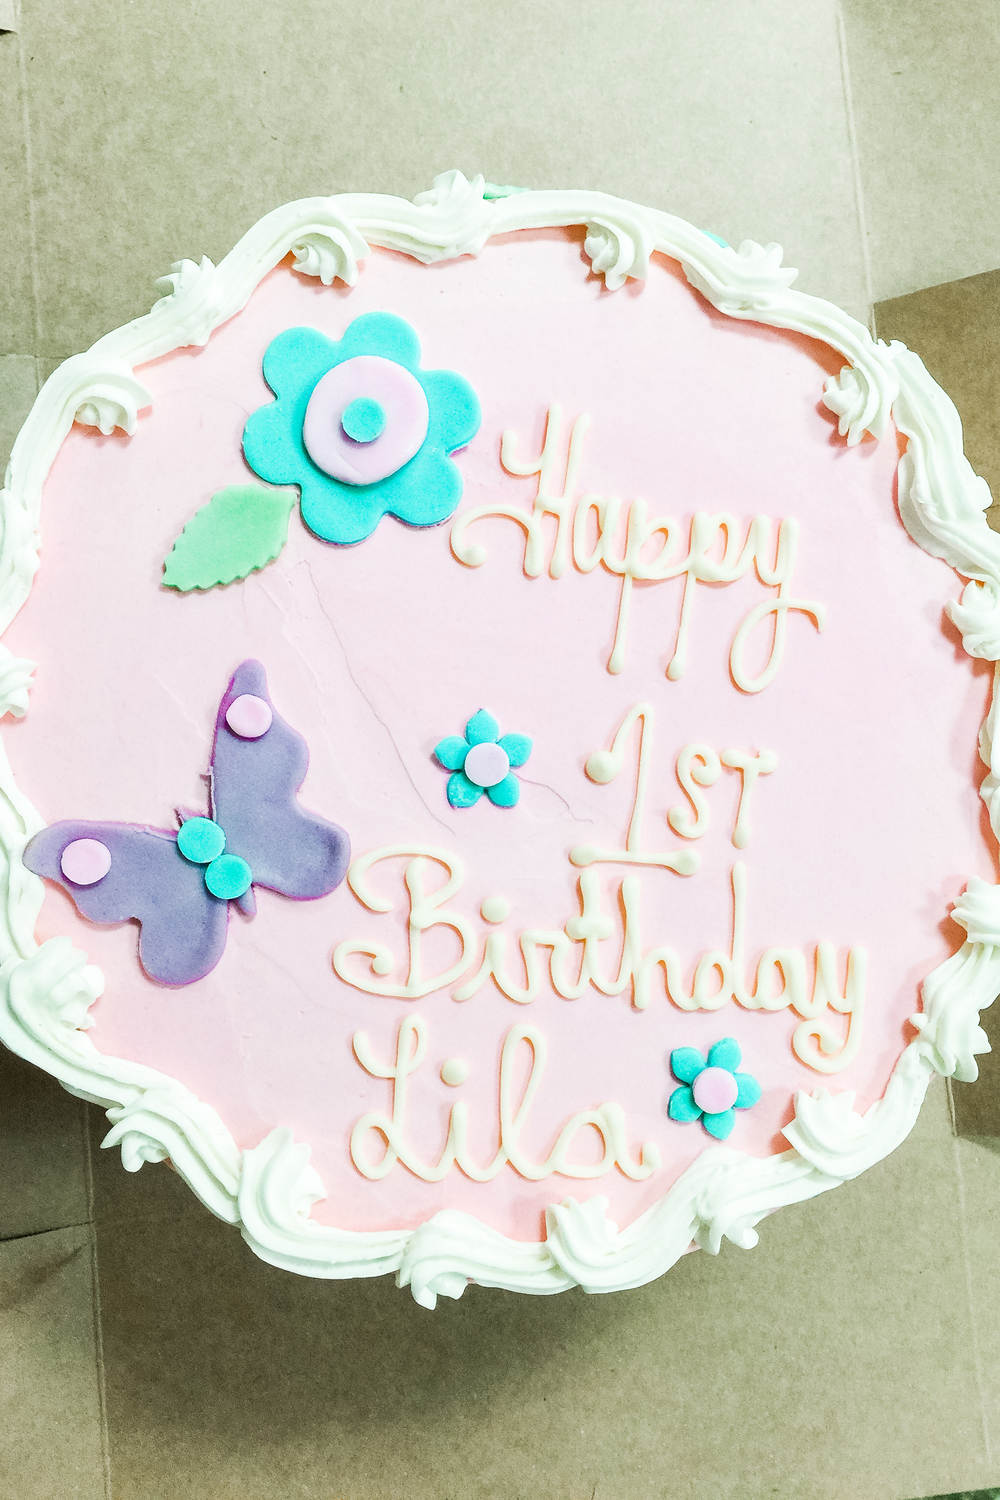 Specialy Cakes Marie Shannon Confections Ventura CA-2.jpg